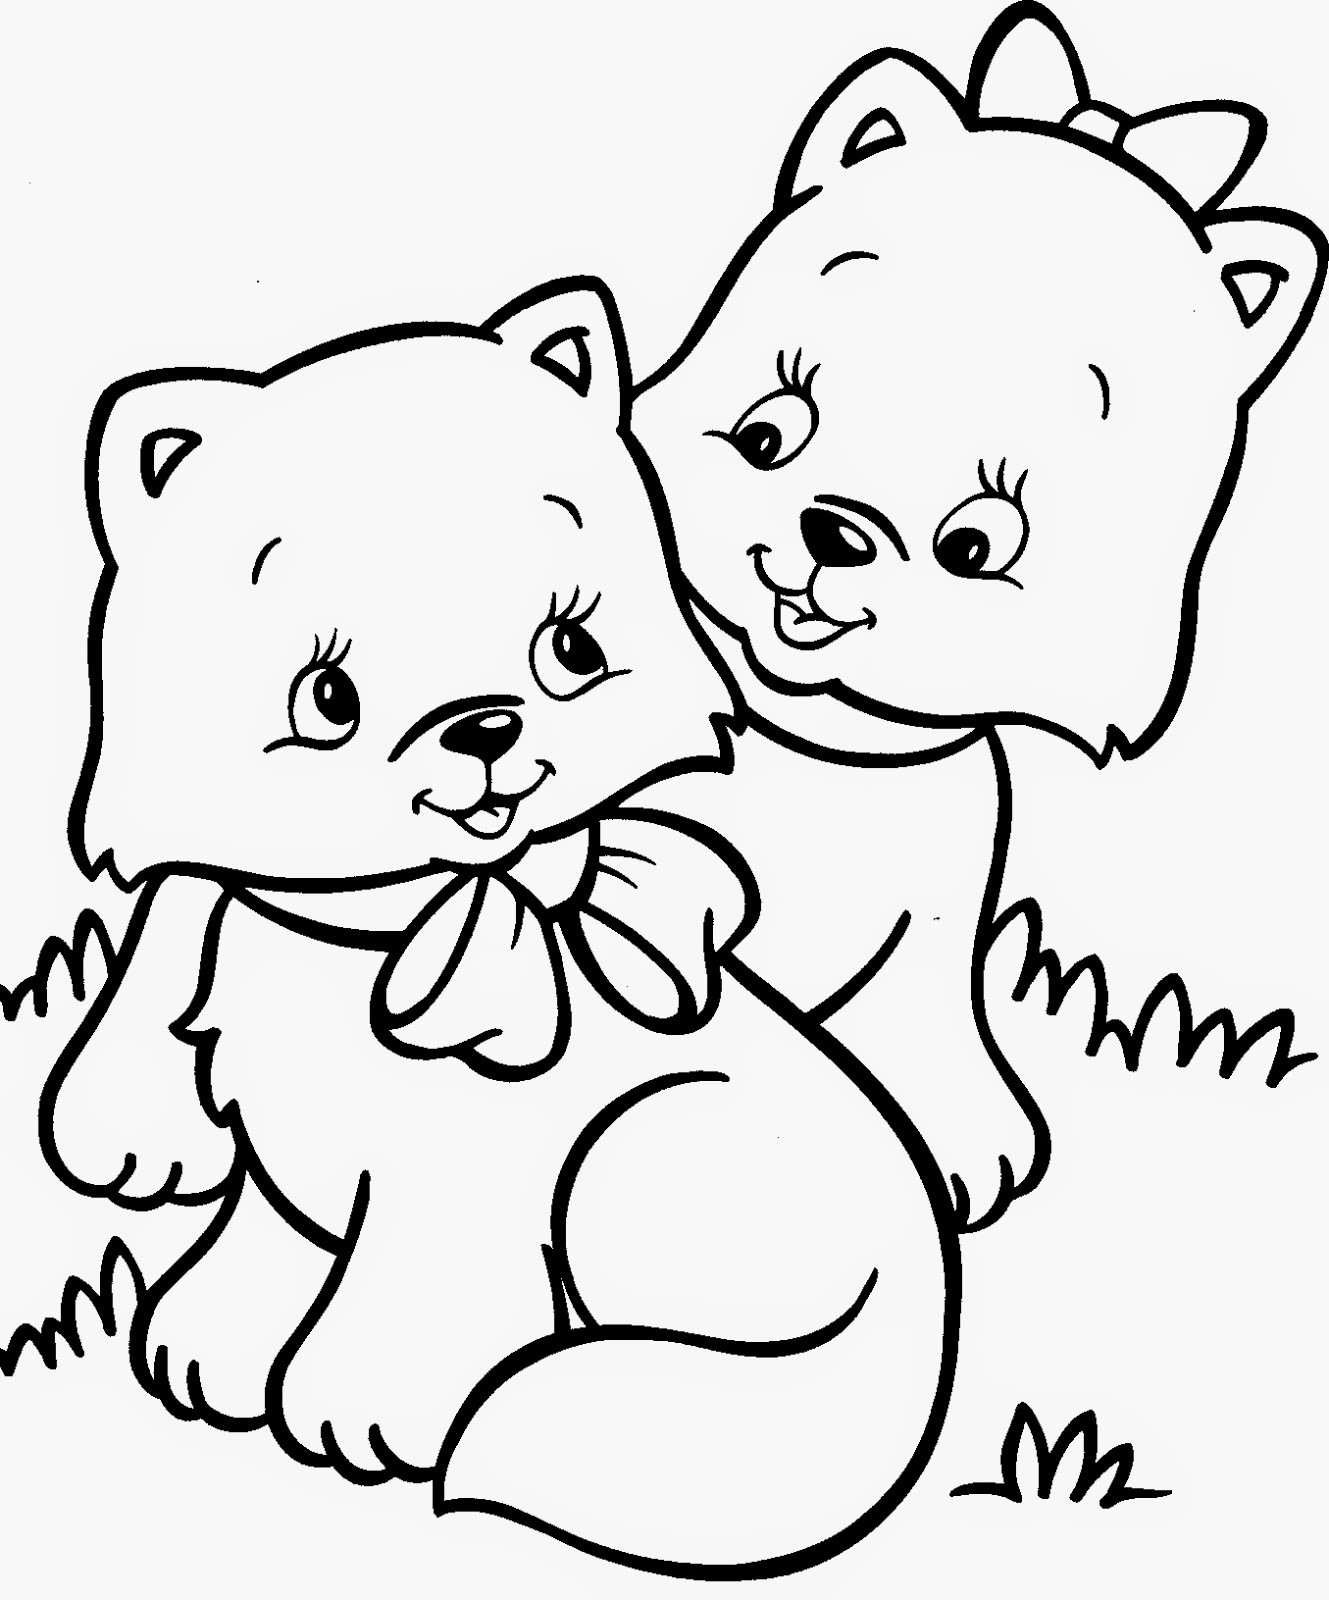 cat coloring book pages - navishta sketch sweet cute angle cats